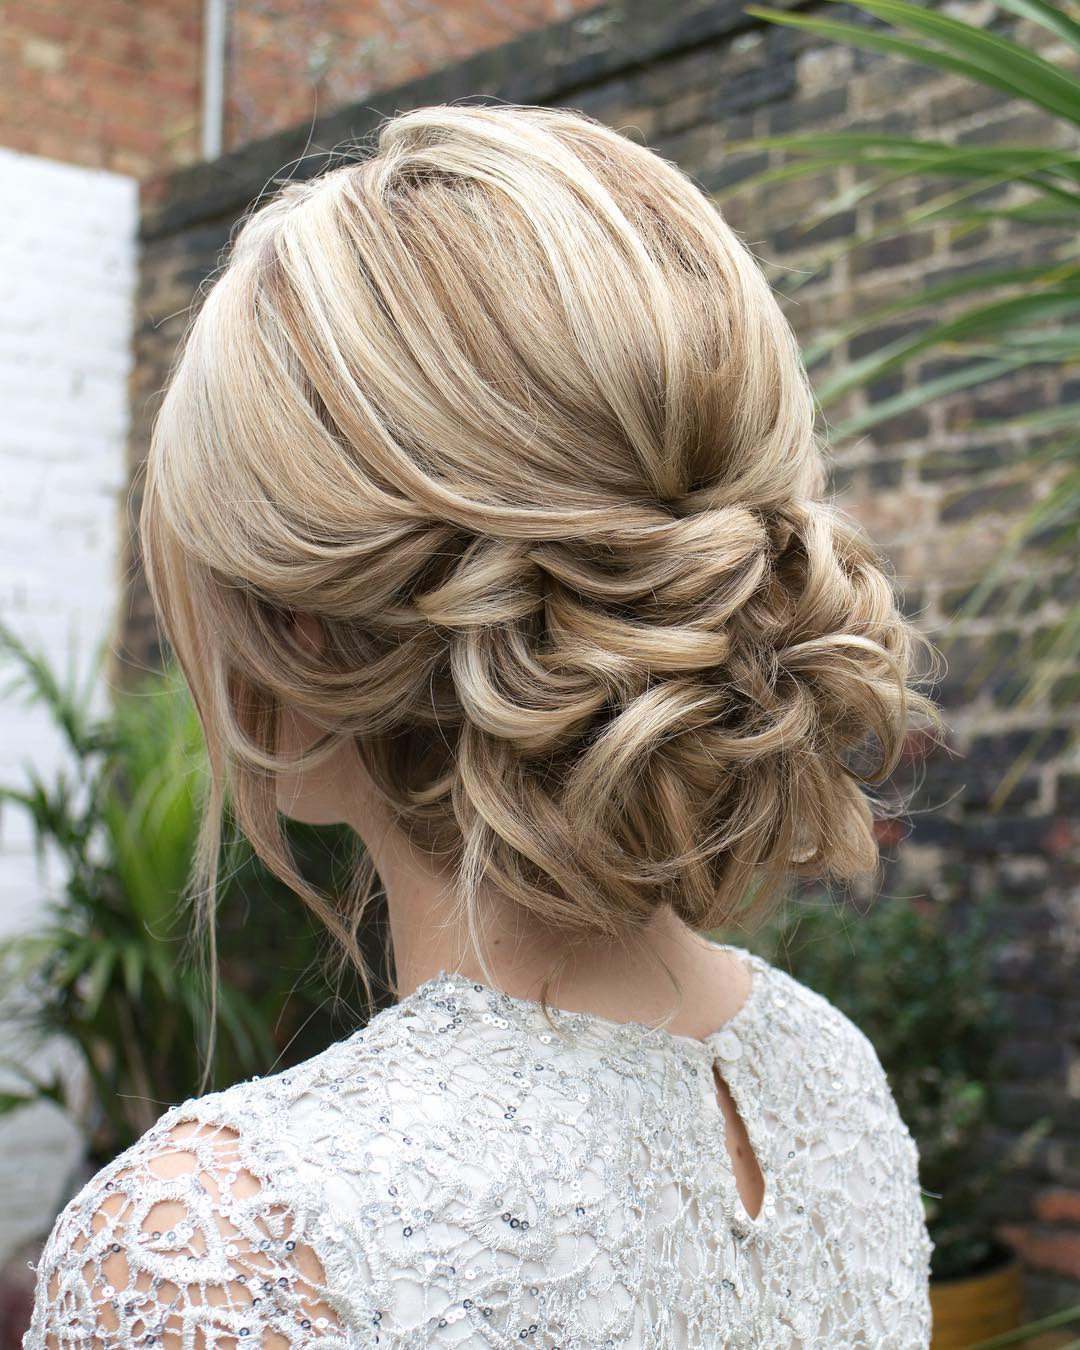 27 Gorgeous Wedding Hairstyles For Long Hair For 2020: 10 Gorgeous Prom Updos For Long Hair, Prom Updo Hairstyles